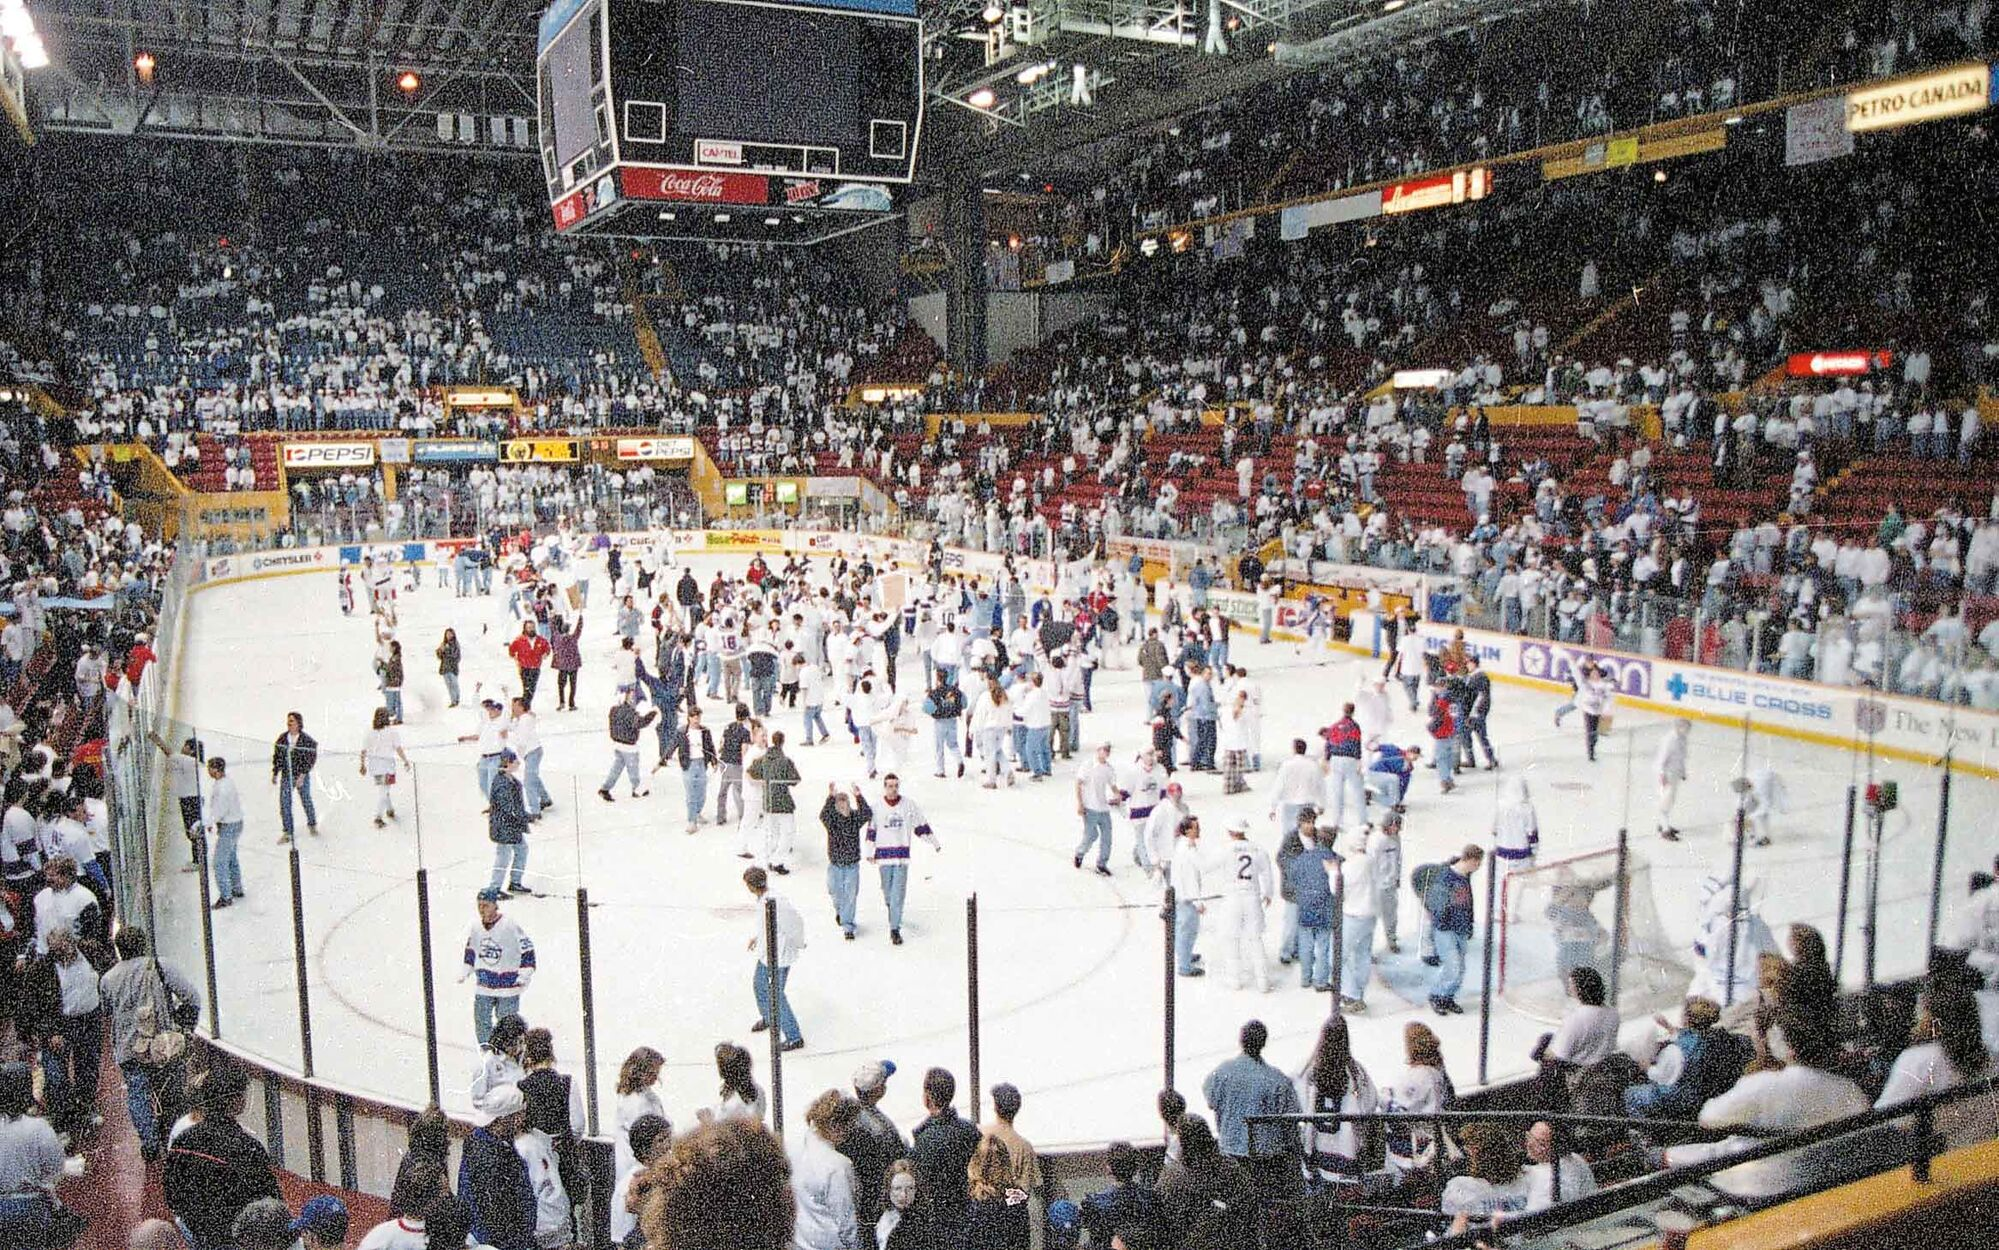 Fans flood the ice after the game.